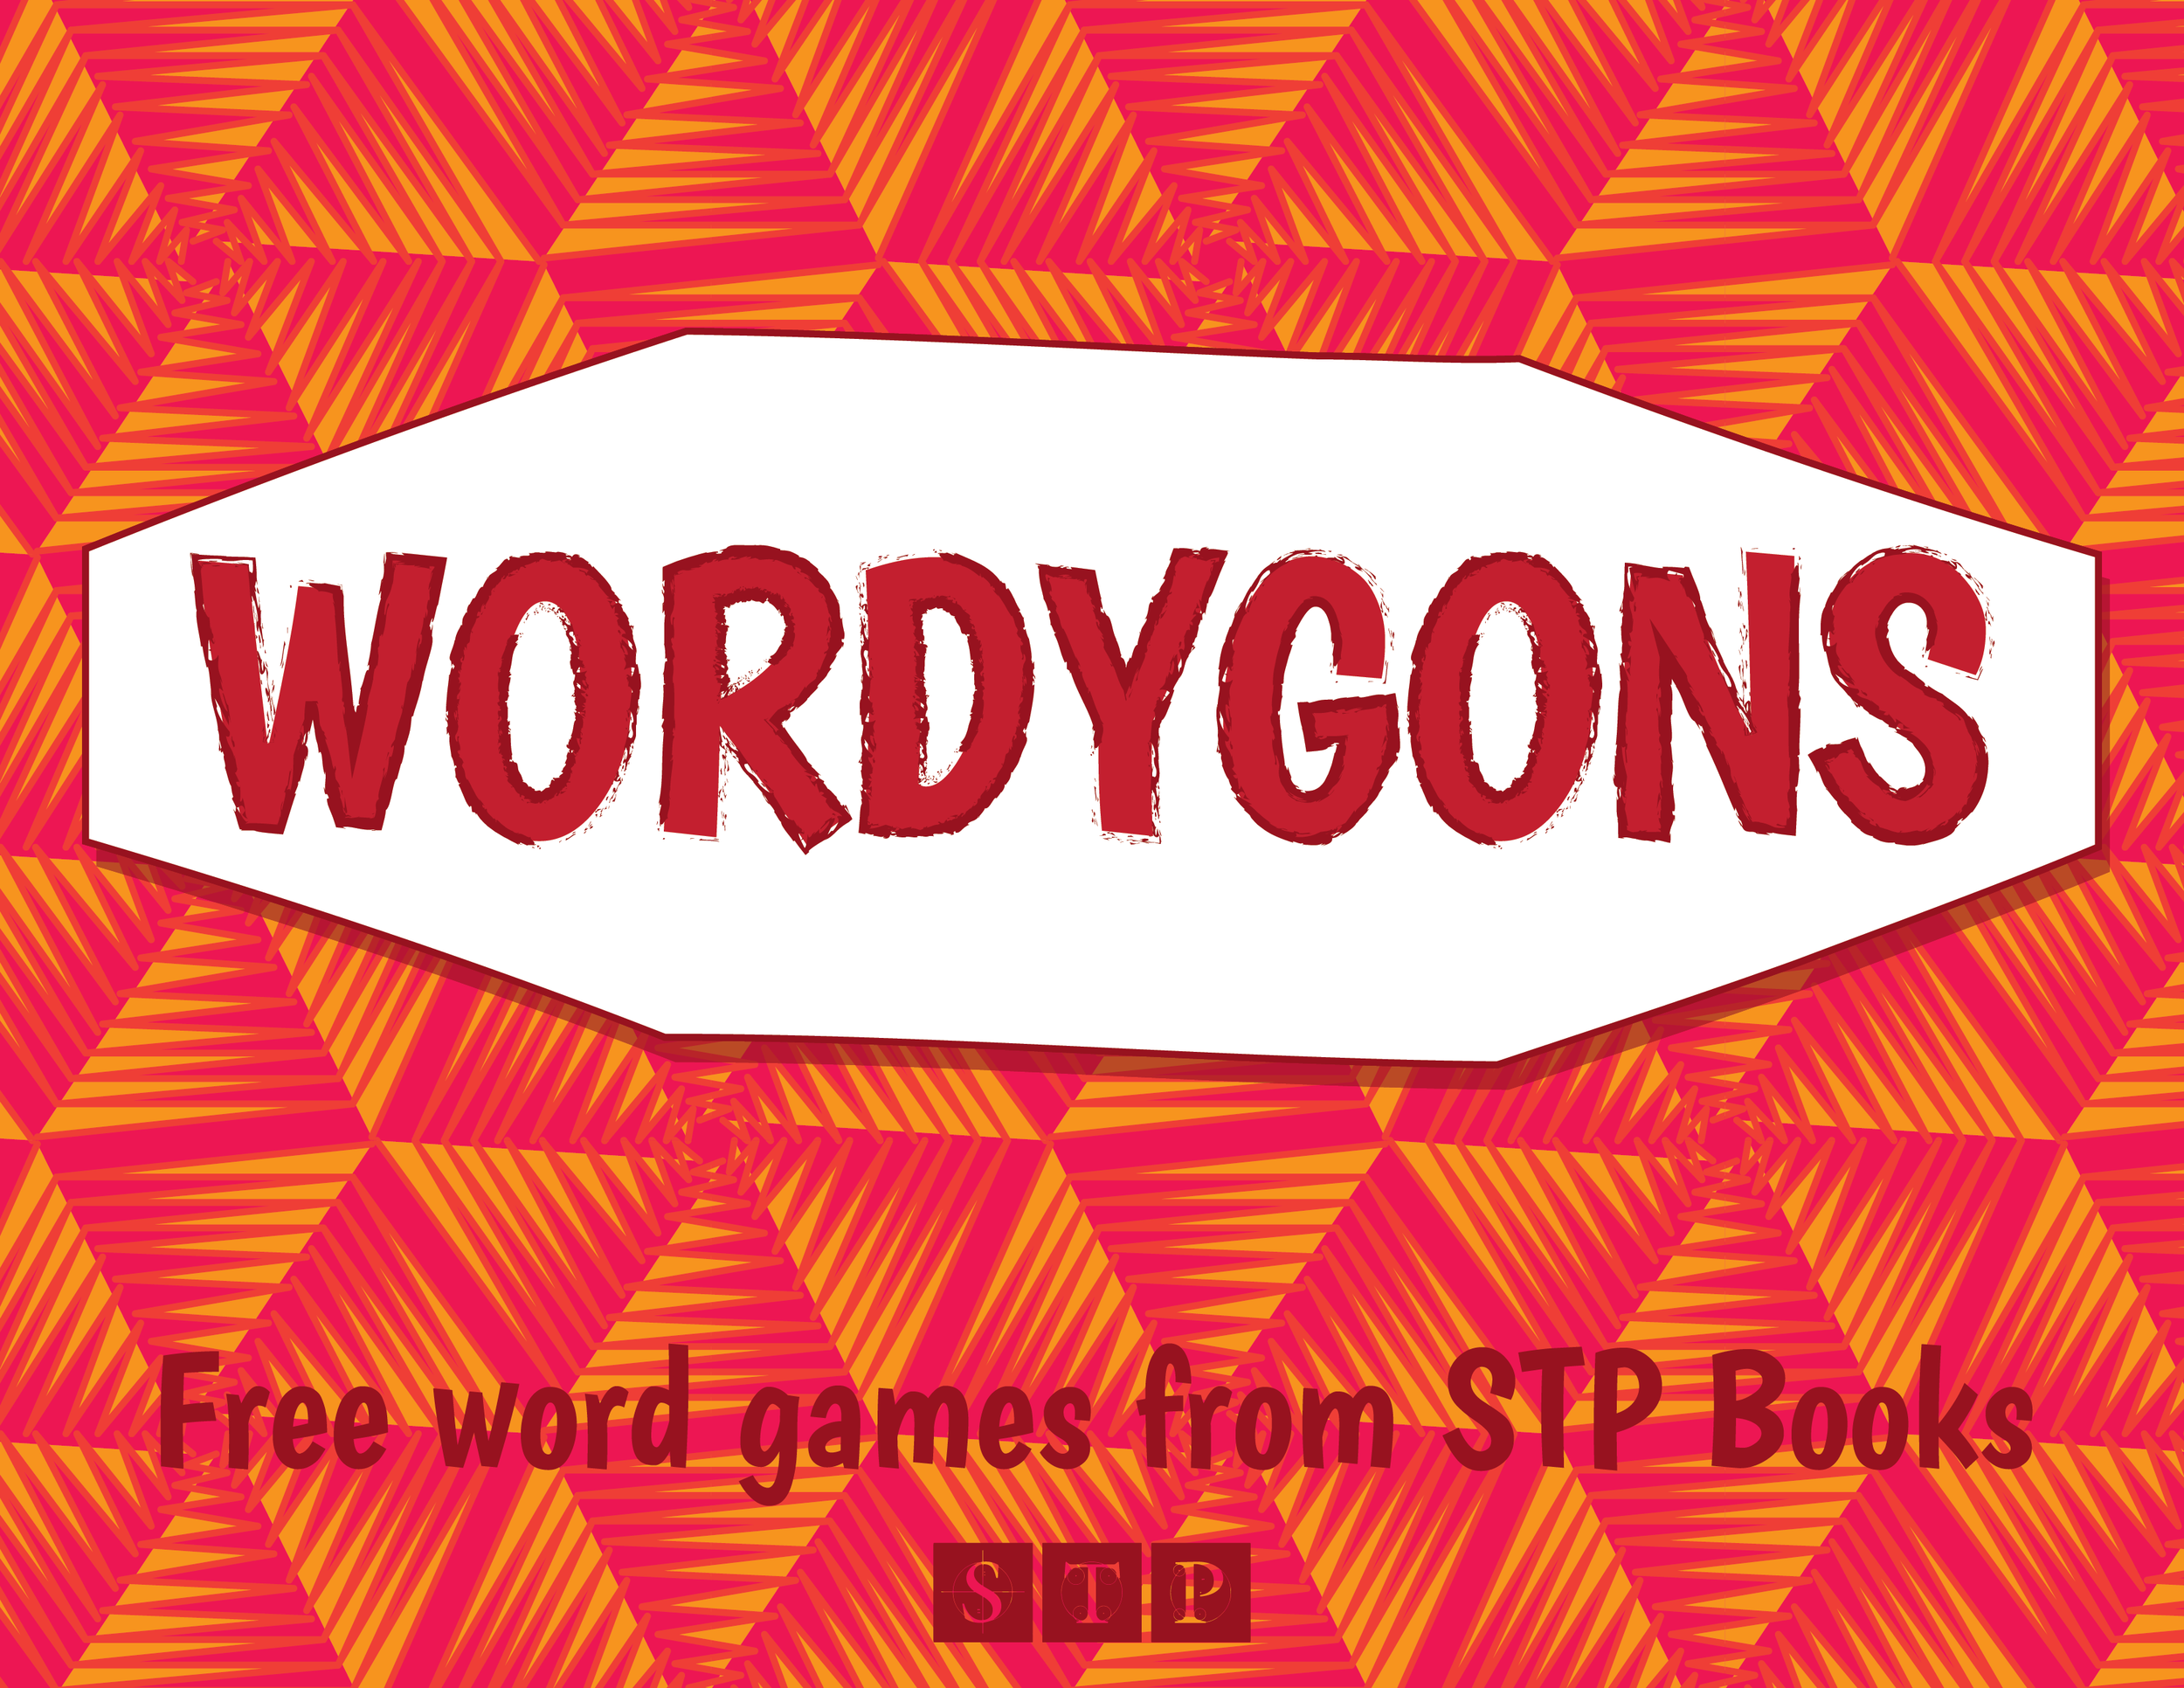 - Find the long word hidden in the polygon and make as many other words as you can!